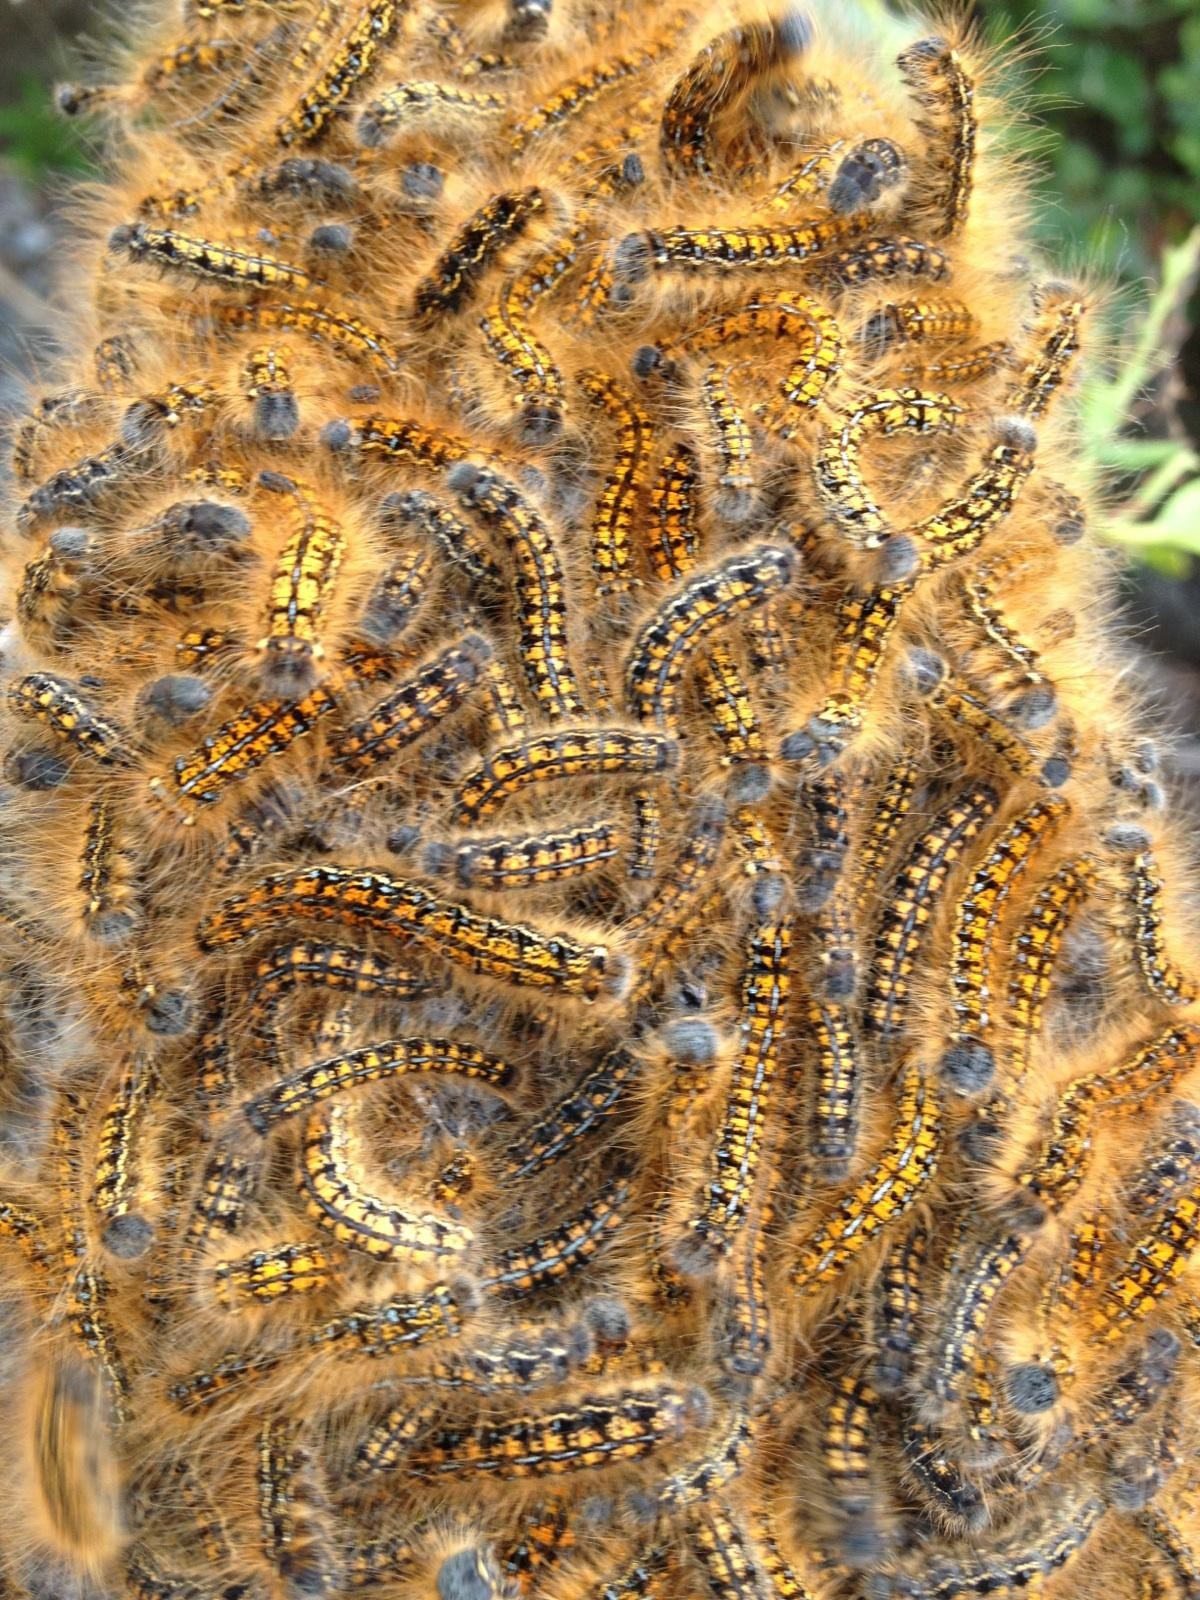 Lisa'scaterpillars